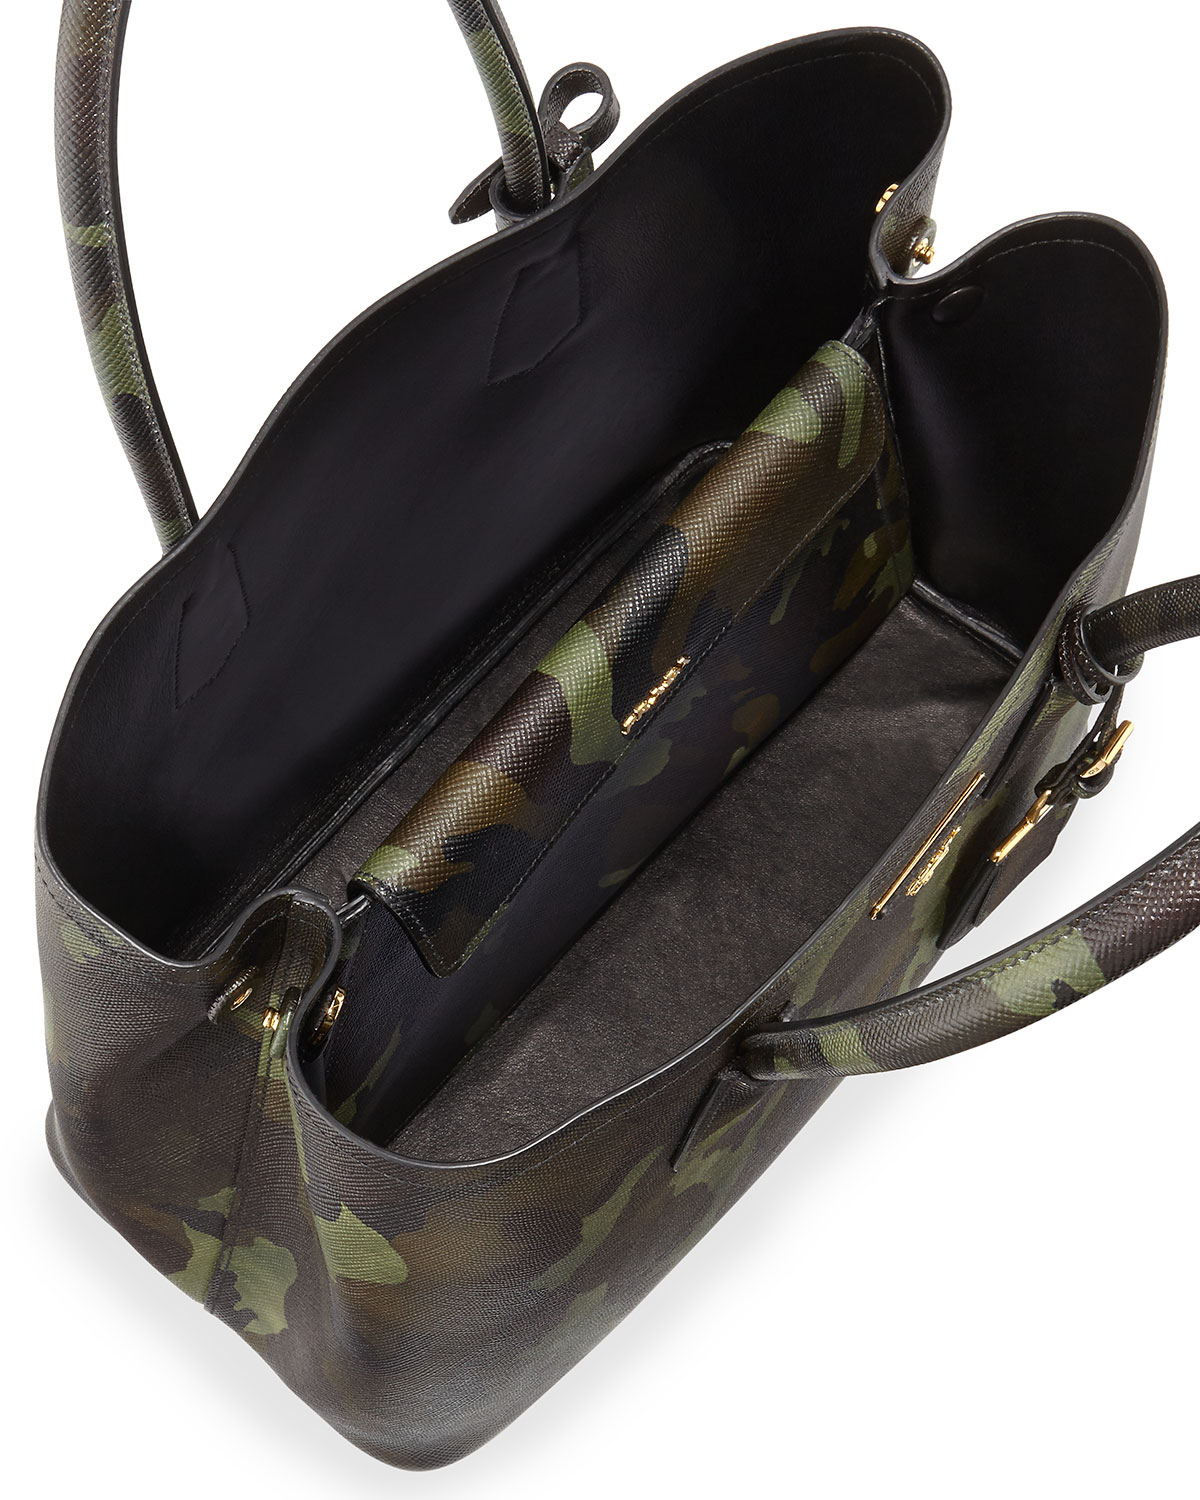 Prada Saffiano Cuir Camouflage Double Bag in Green (Brown Camo ...